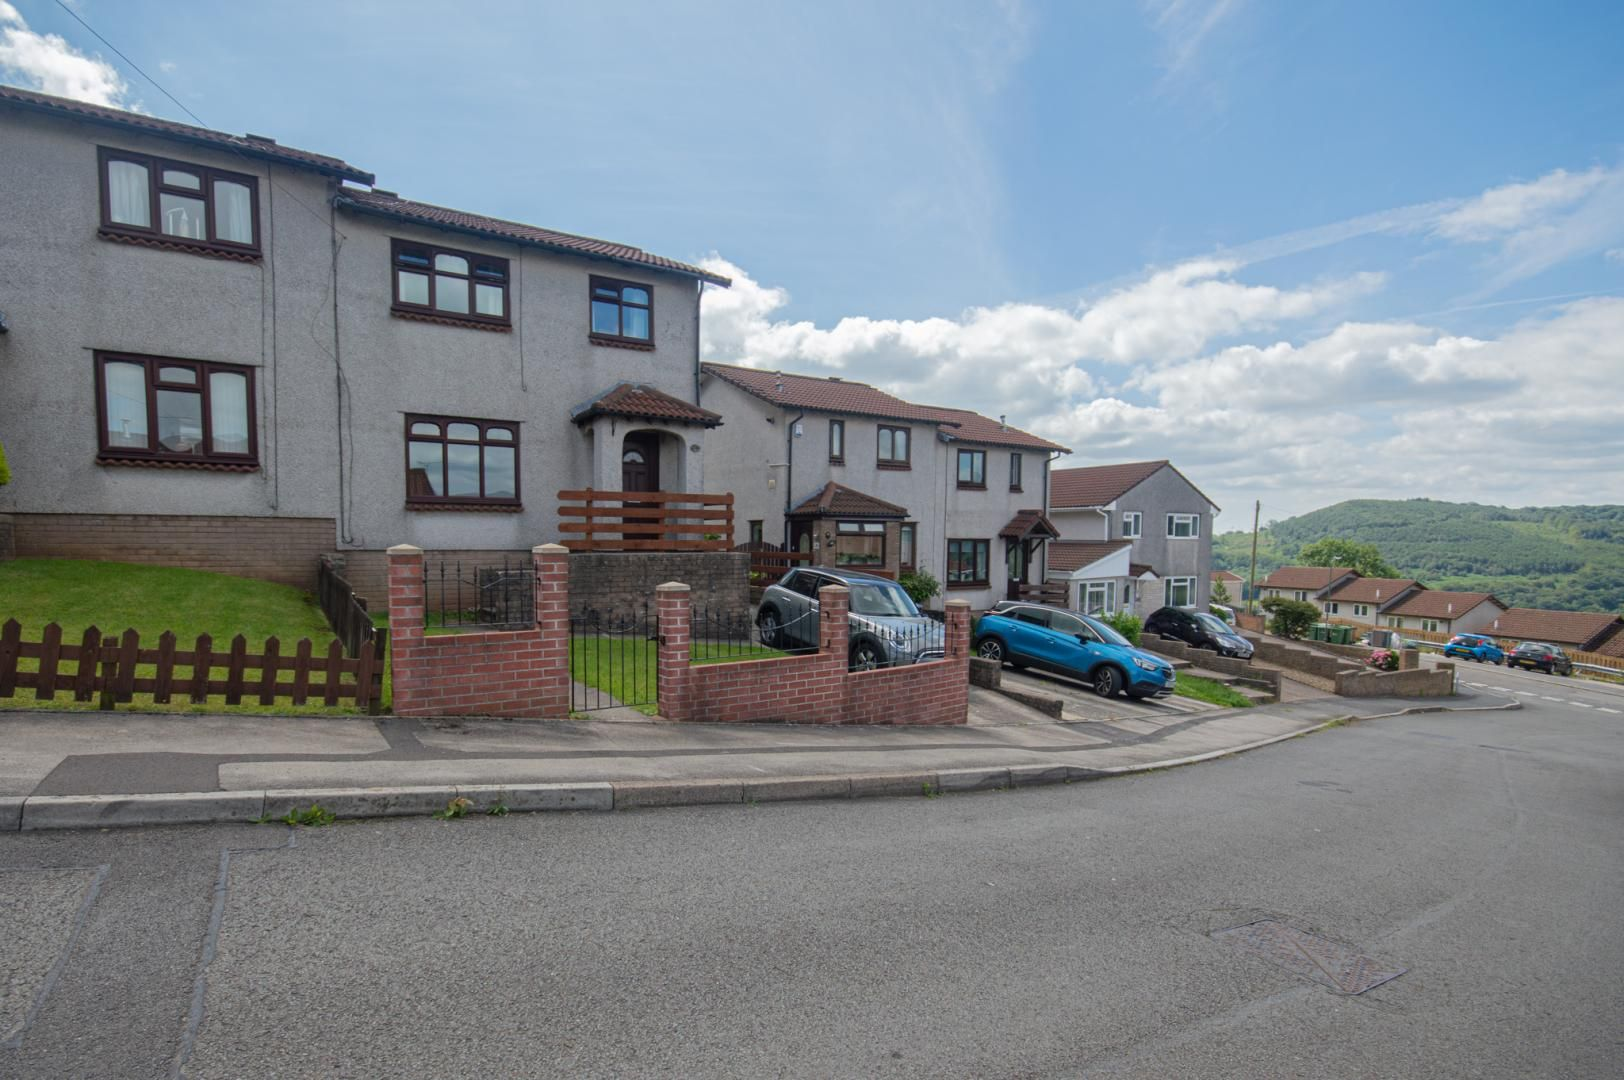 3 bed house to rent in Cader Idris Close, NP11